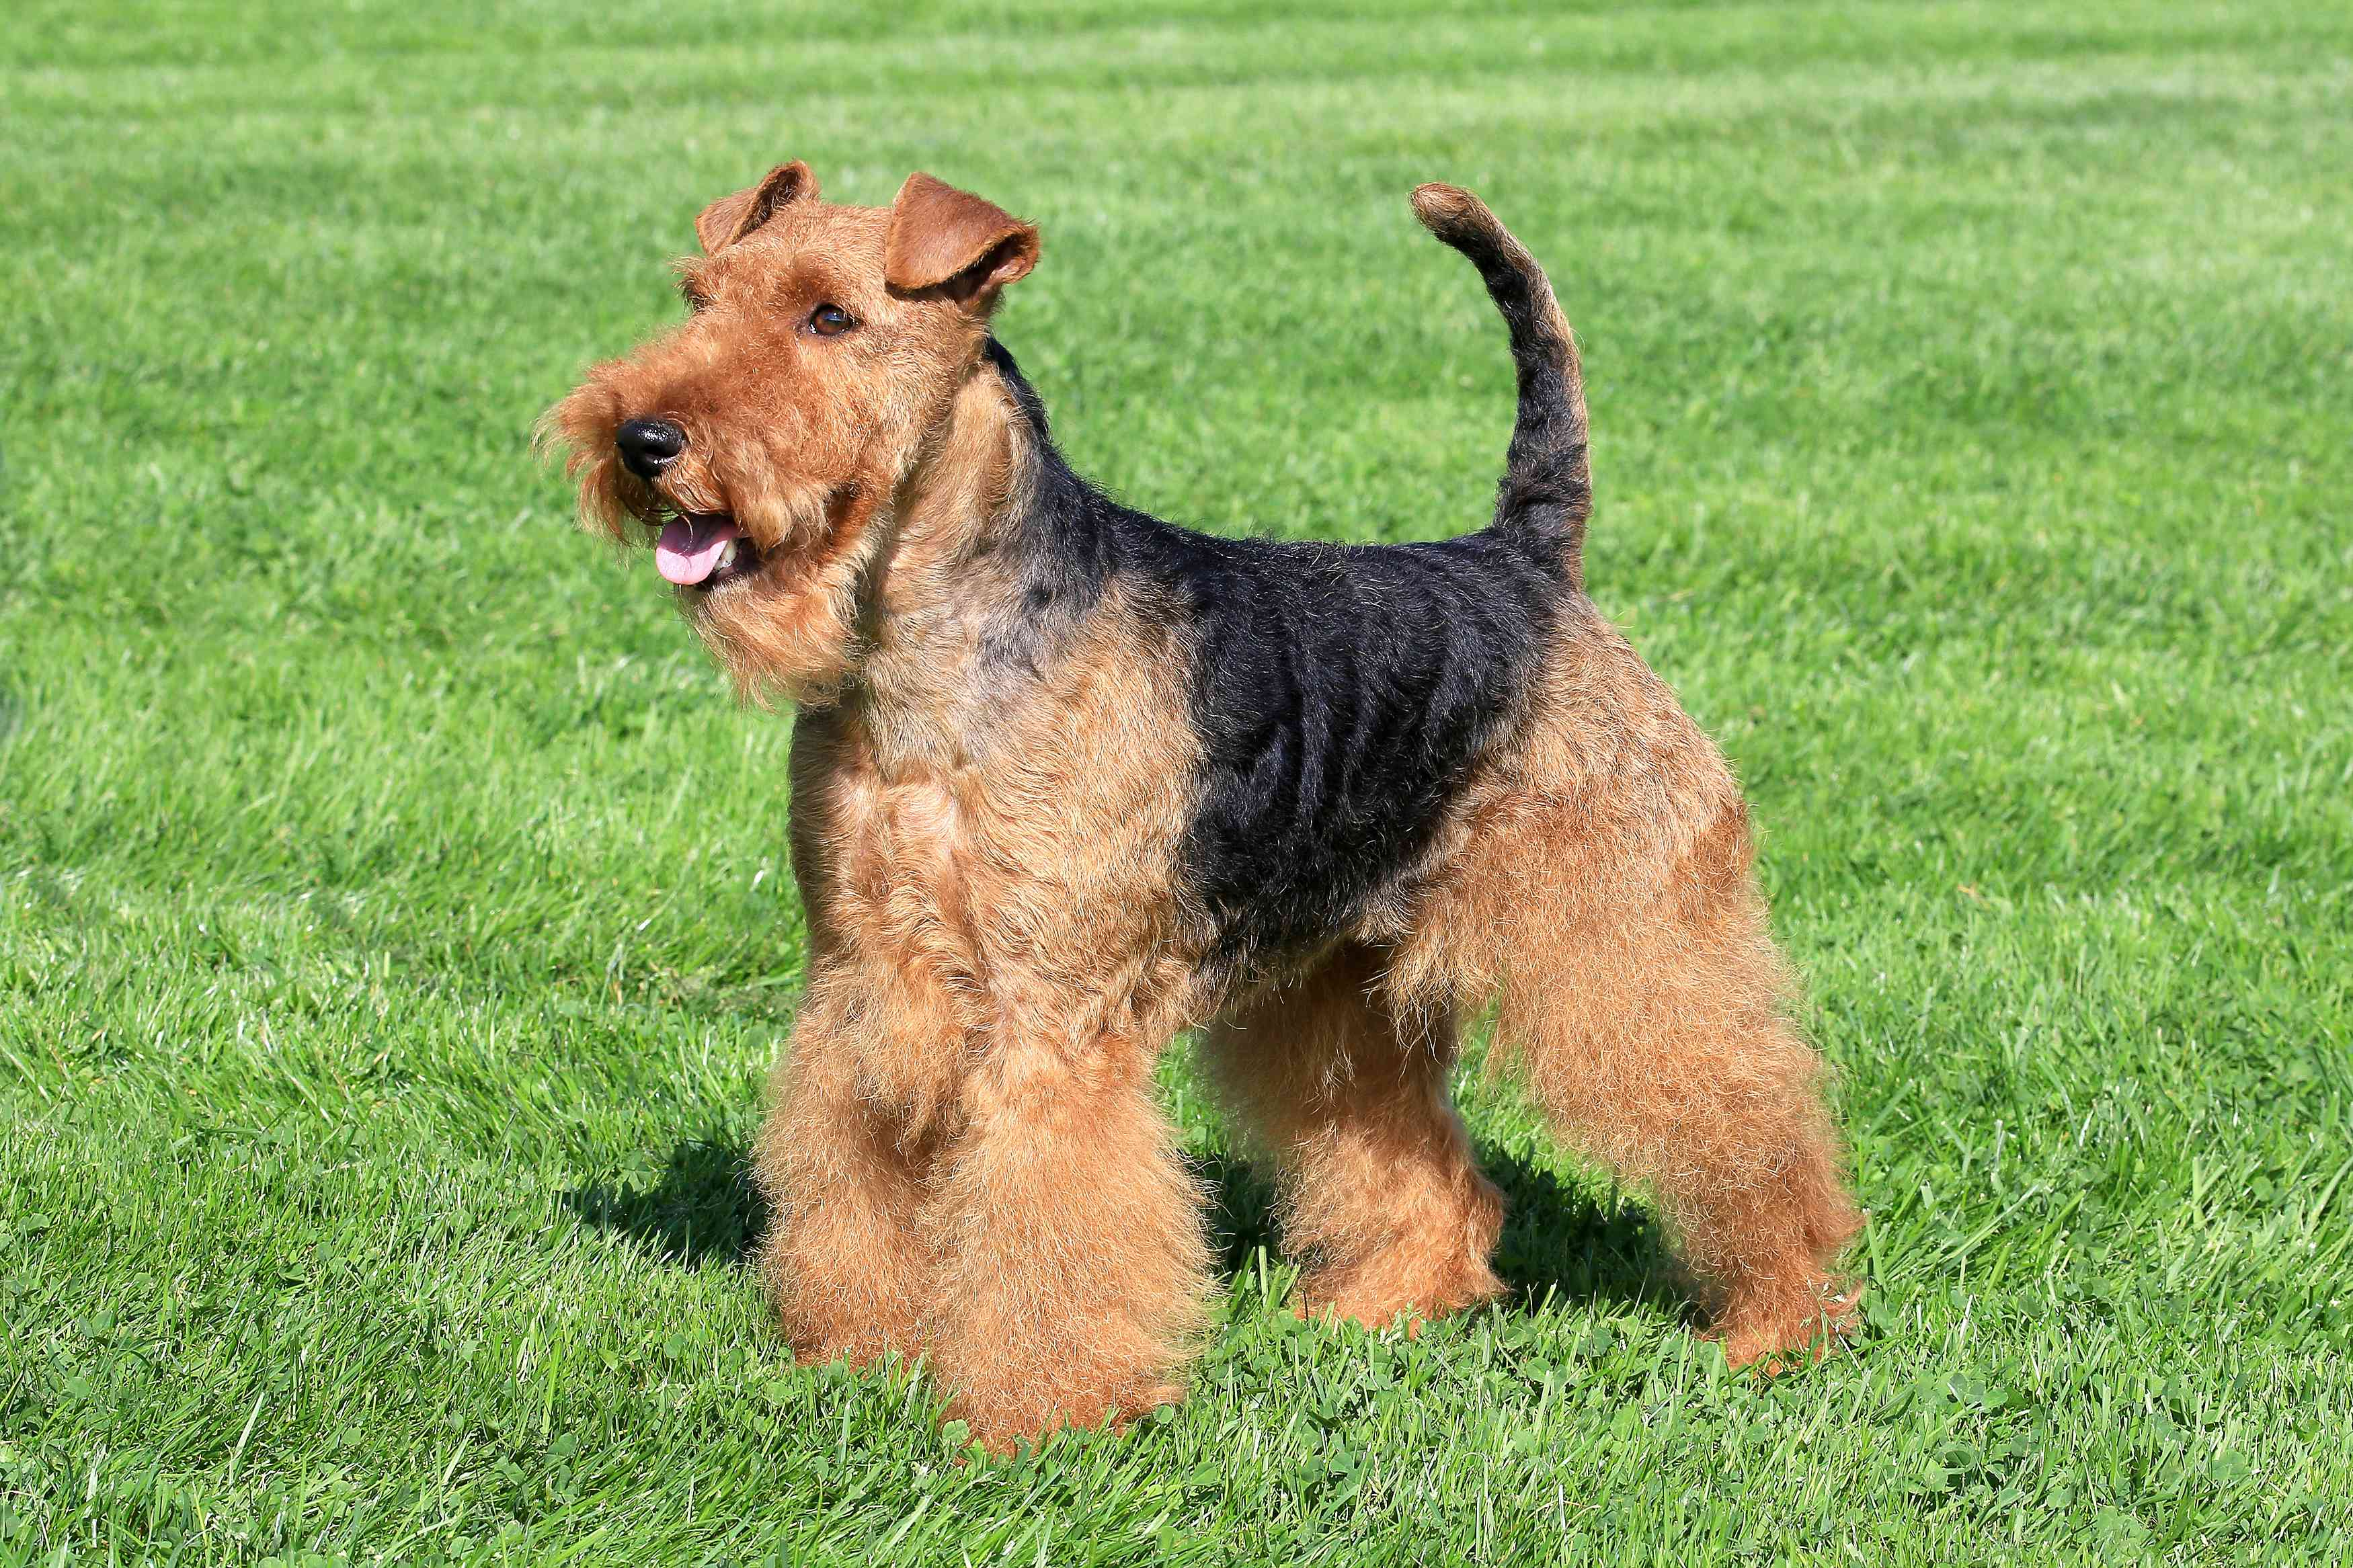 Welsh Terrier parado en el césped